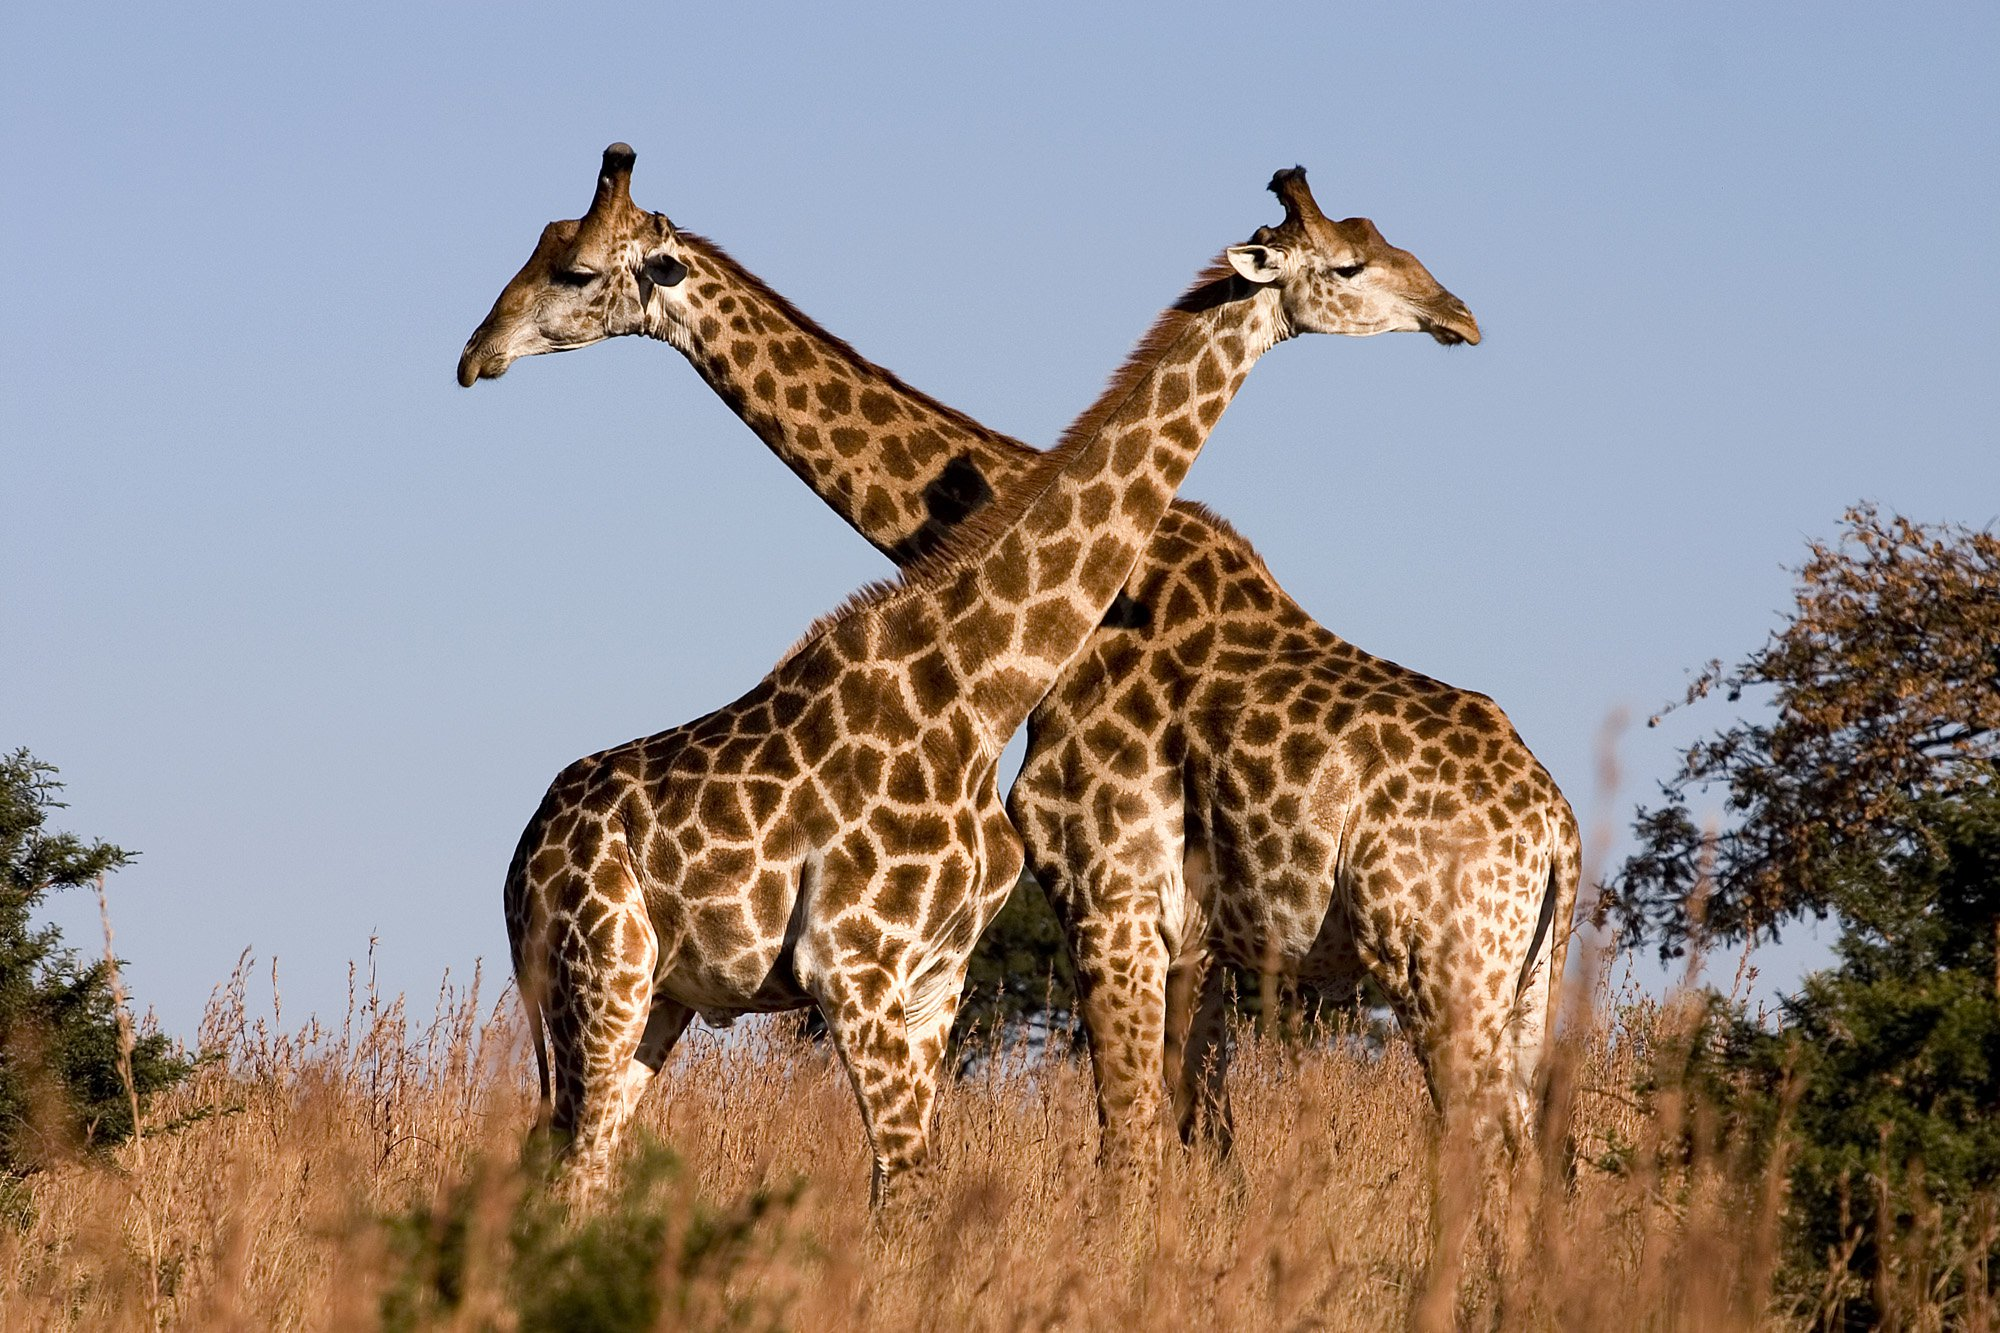 Two giraffes with spots